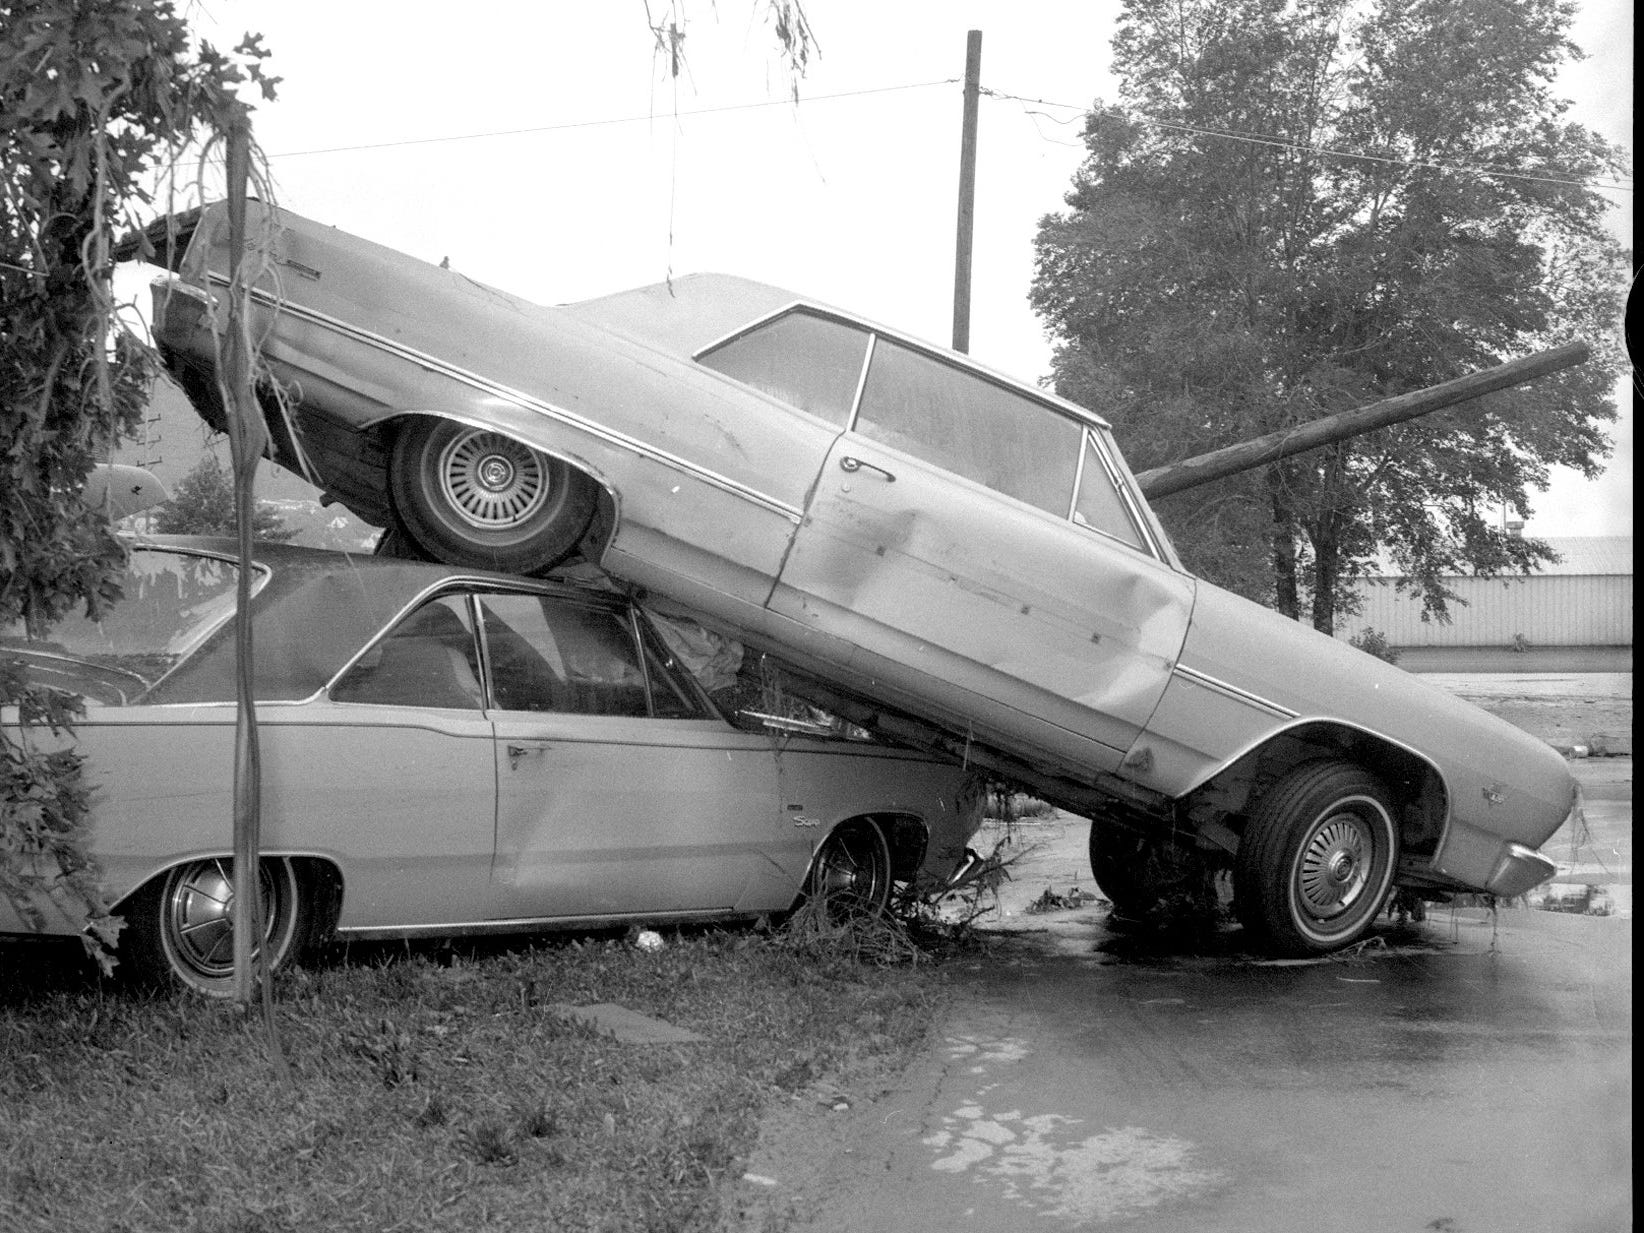 Cars were tossed around like toys in Elmira by Agnes.